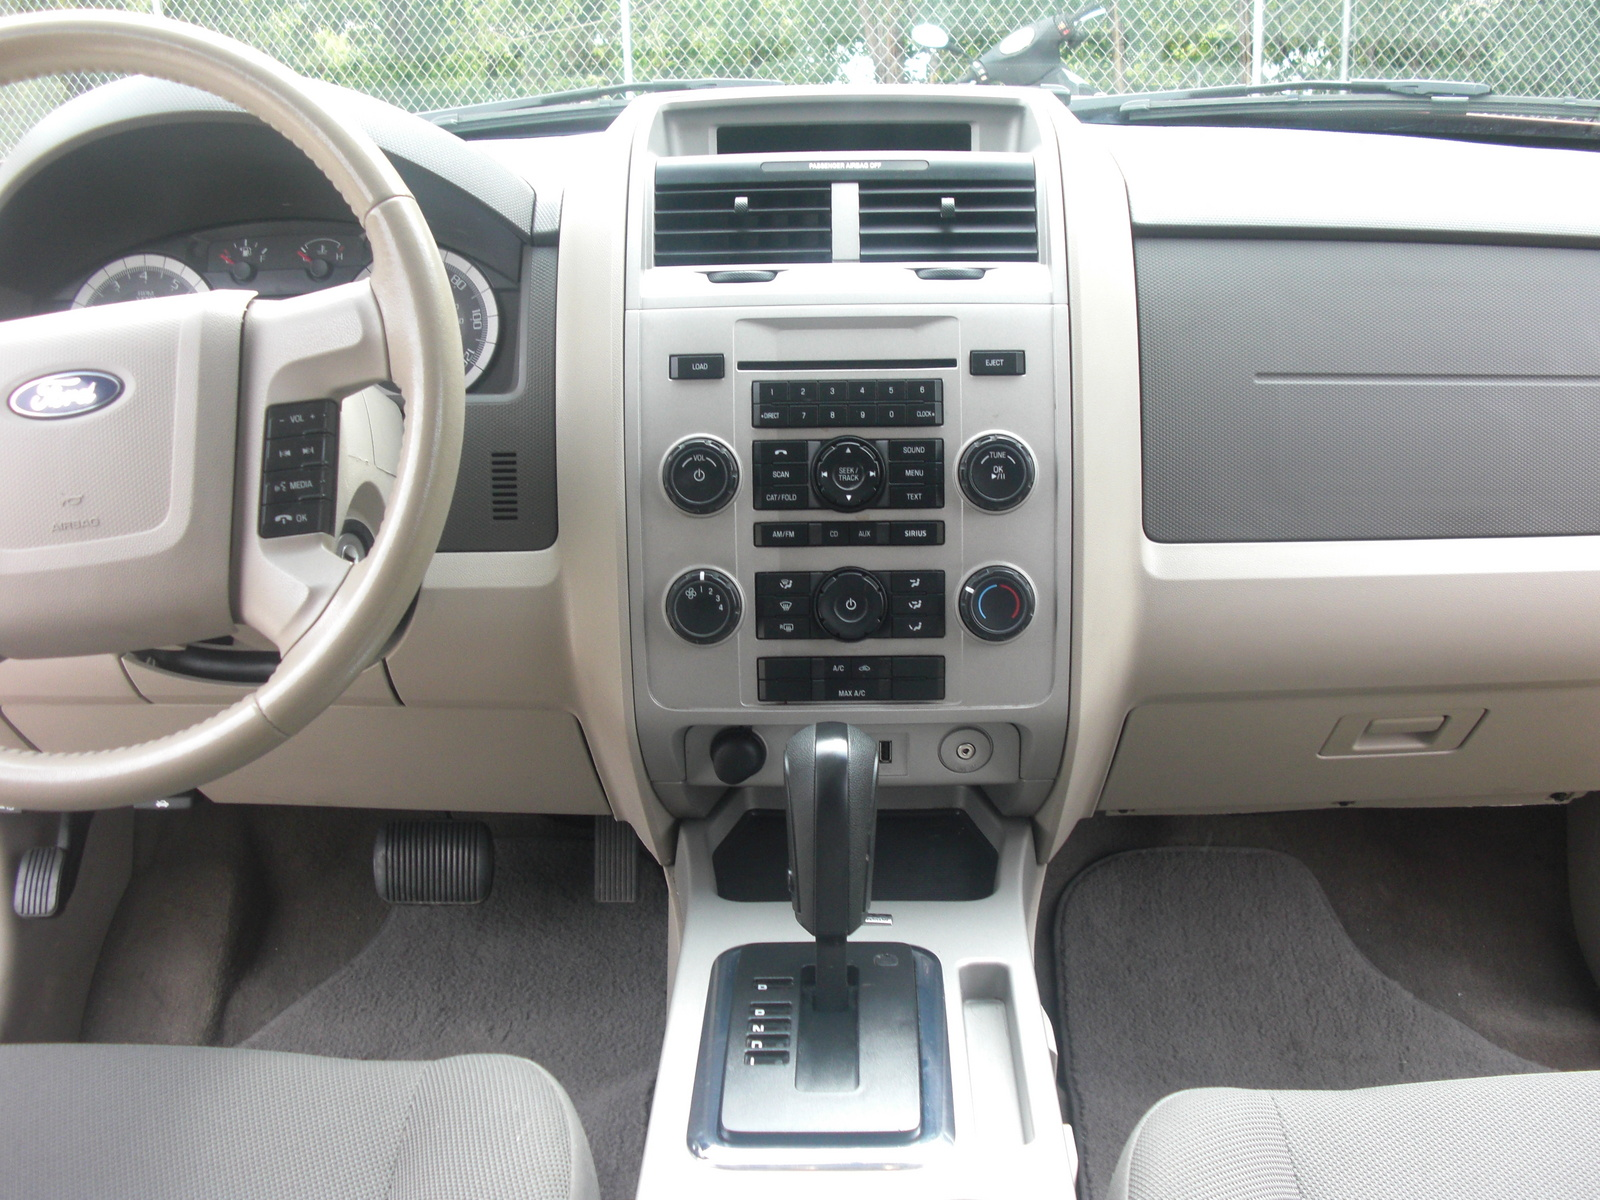 2010 ford escape interior features. Black Bedroom Furniture Sets. Home Design Ideas